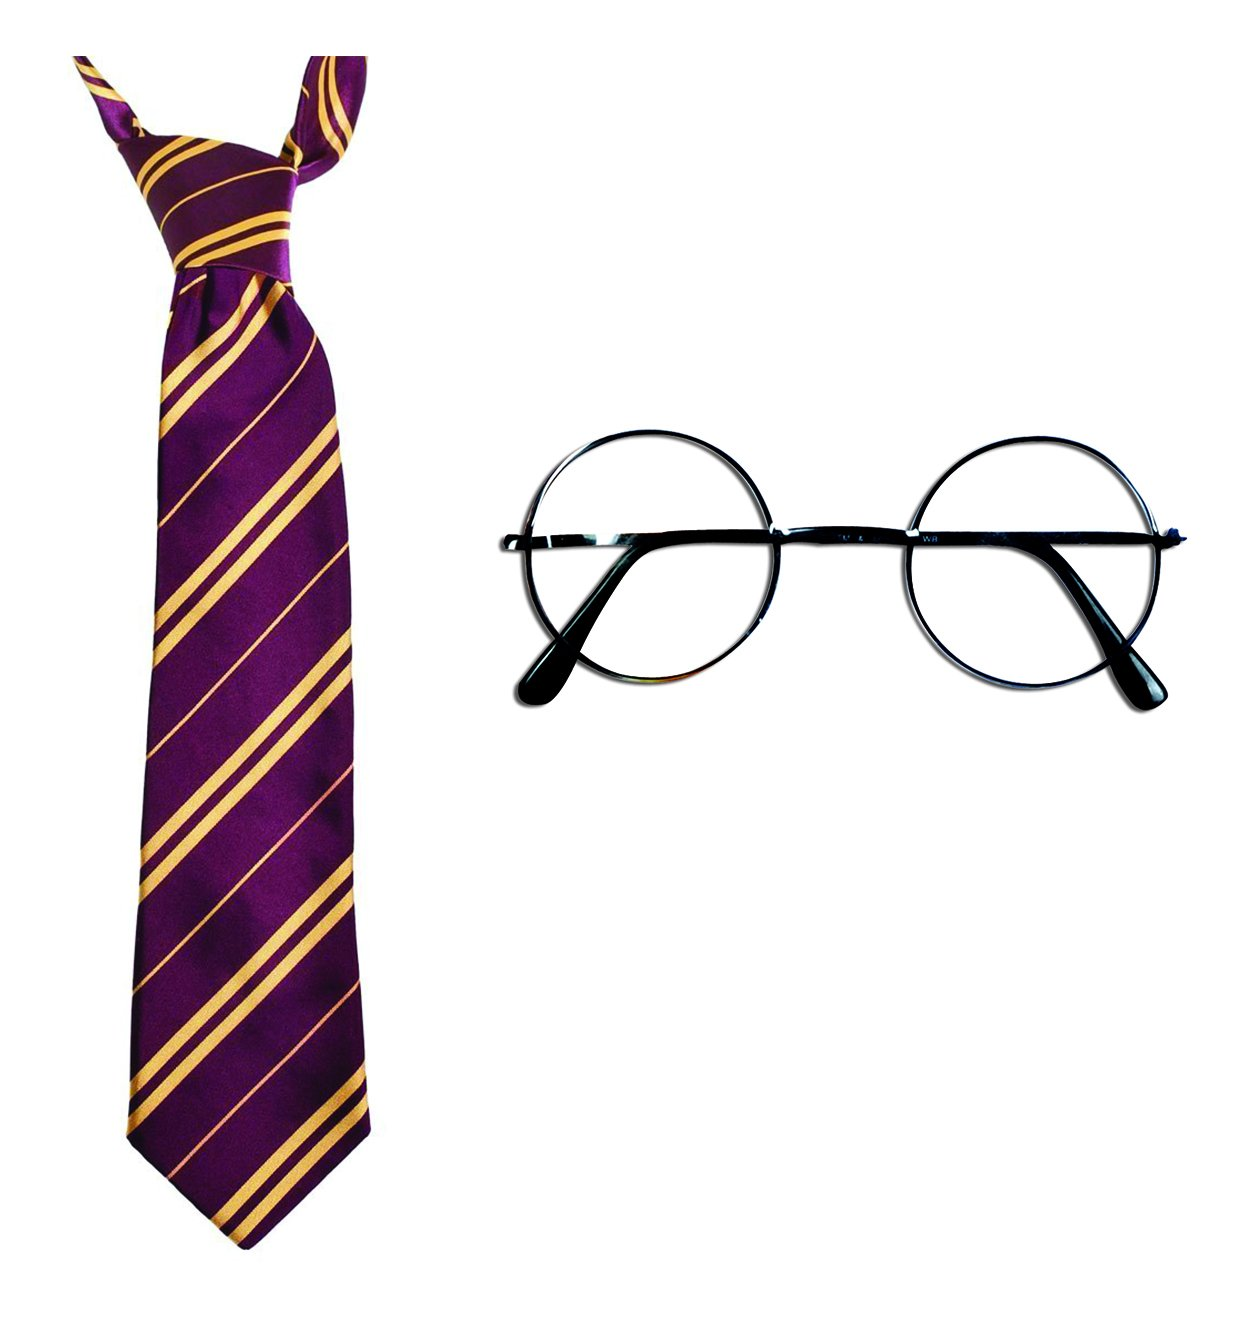 Harry Potter Halloween Costume accessories - Novelty Glasses and Gryffindor Tie